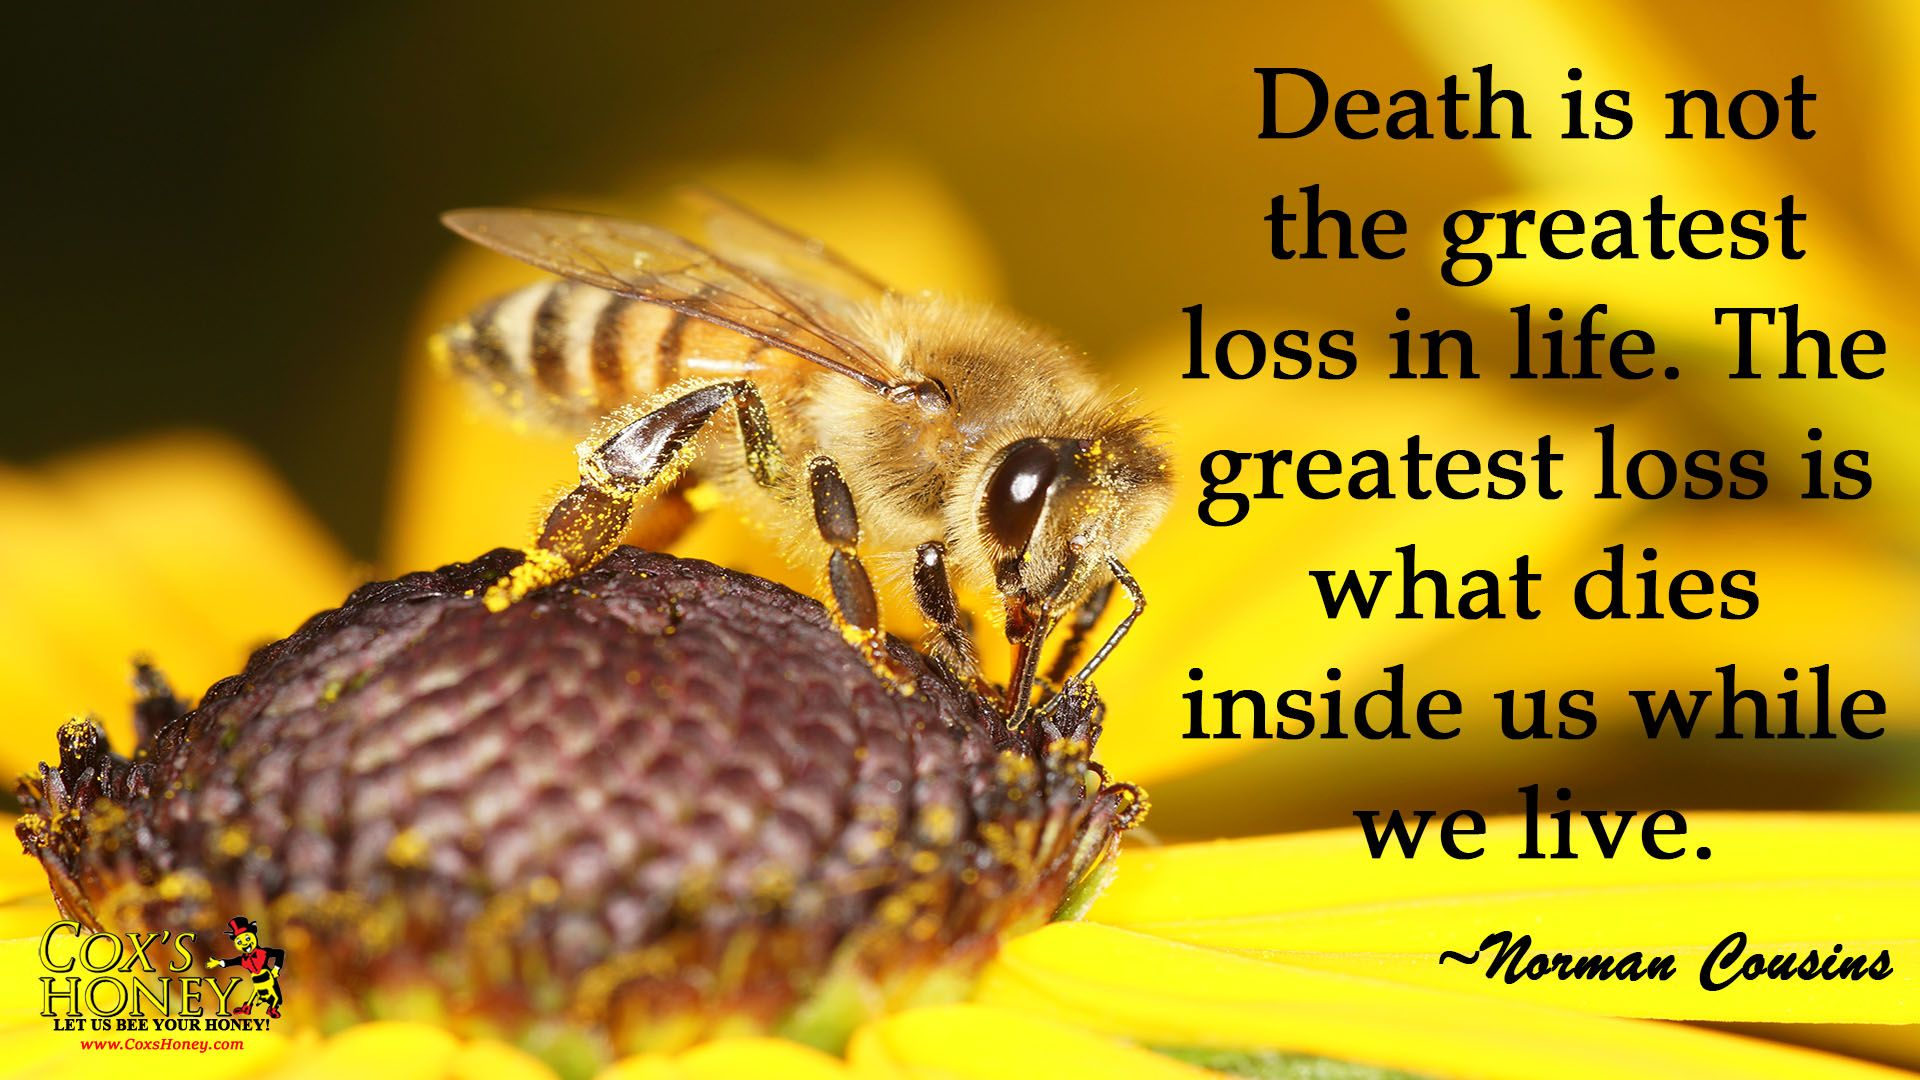 Quotes January Quote Of The Week For January 30 2017Death Is Not The Greatest